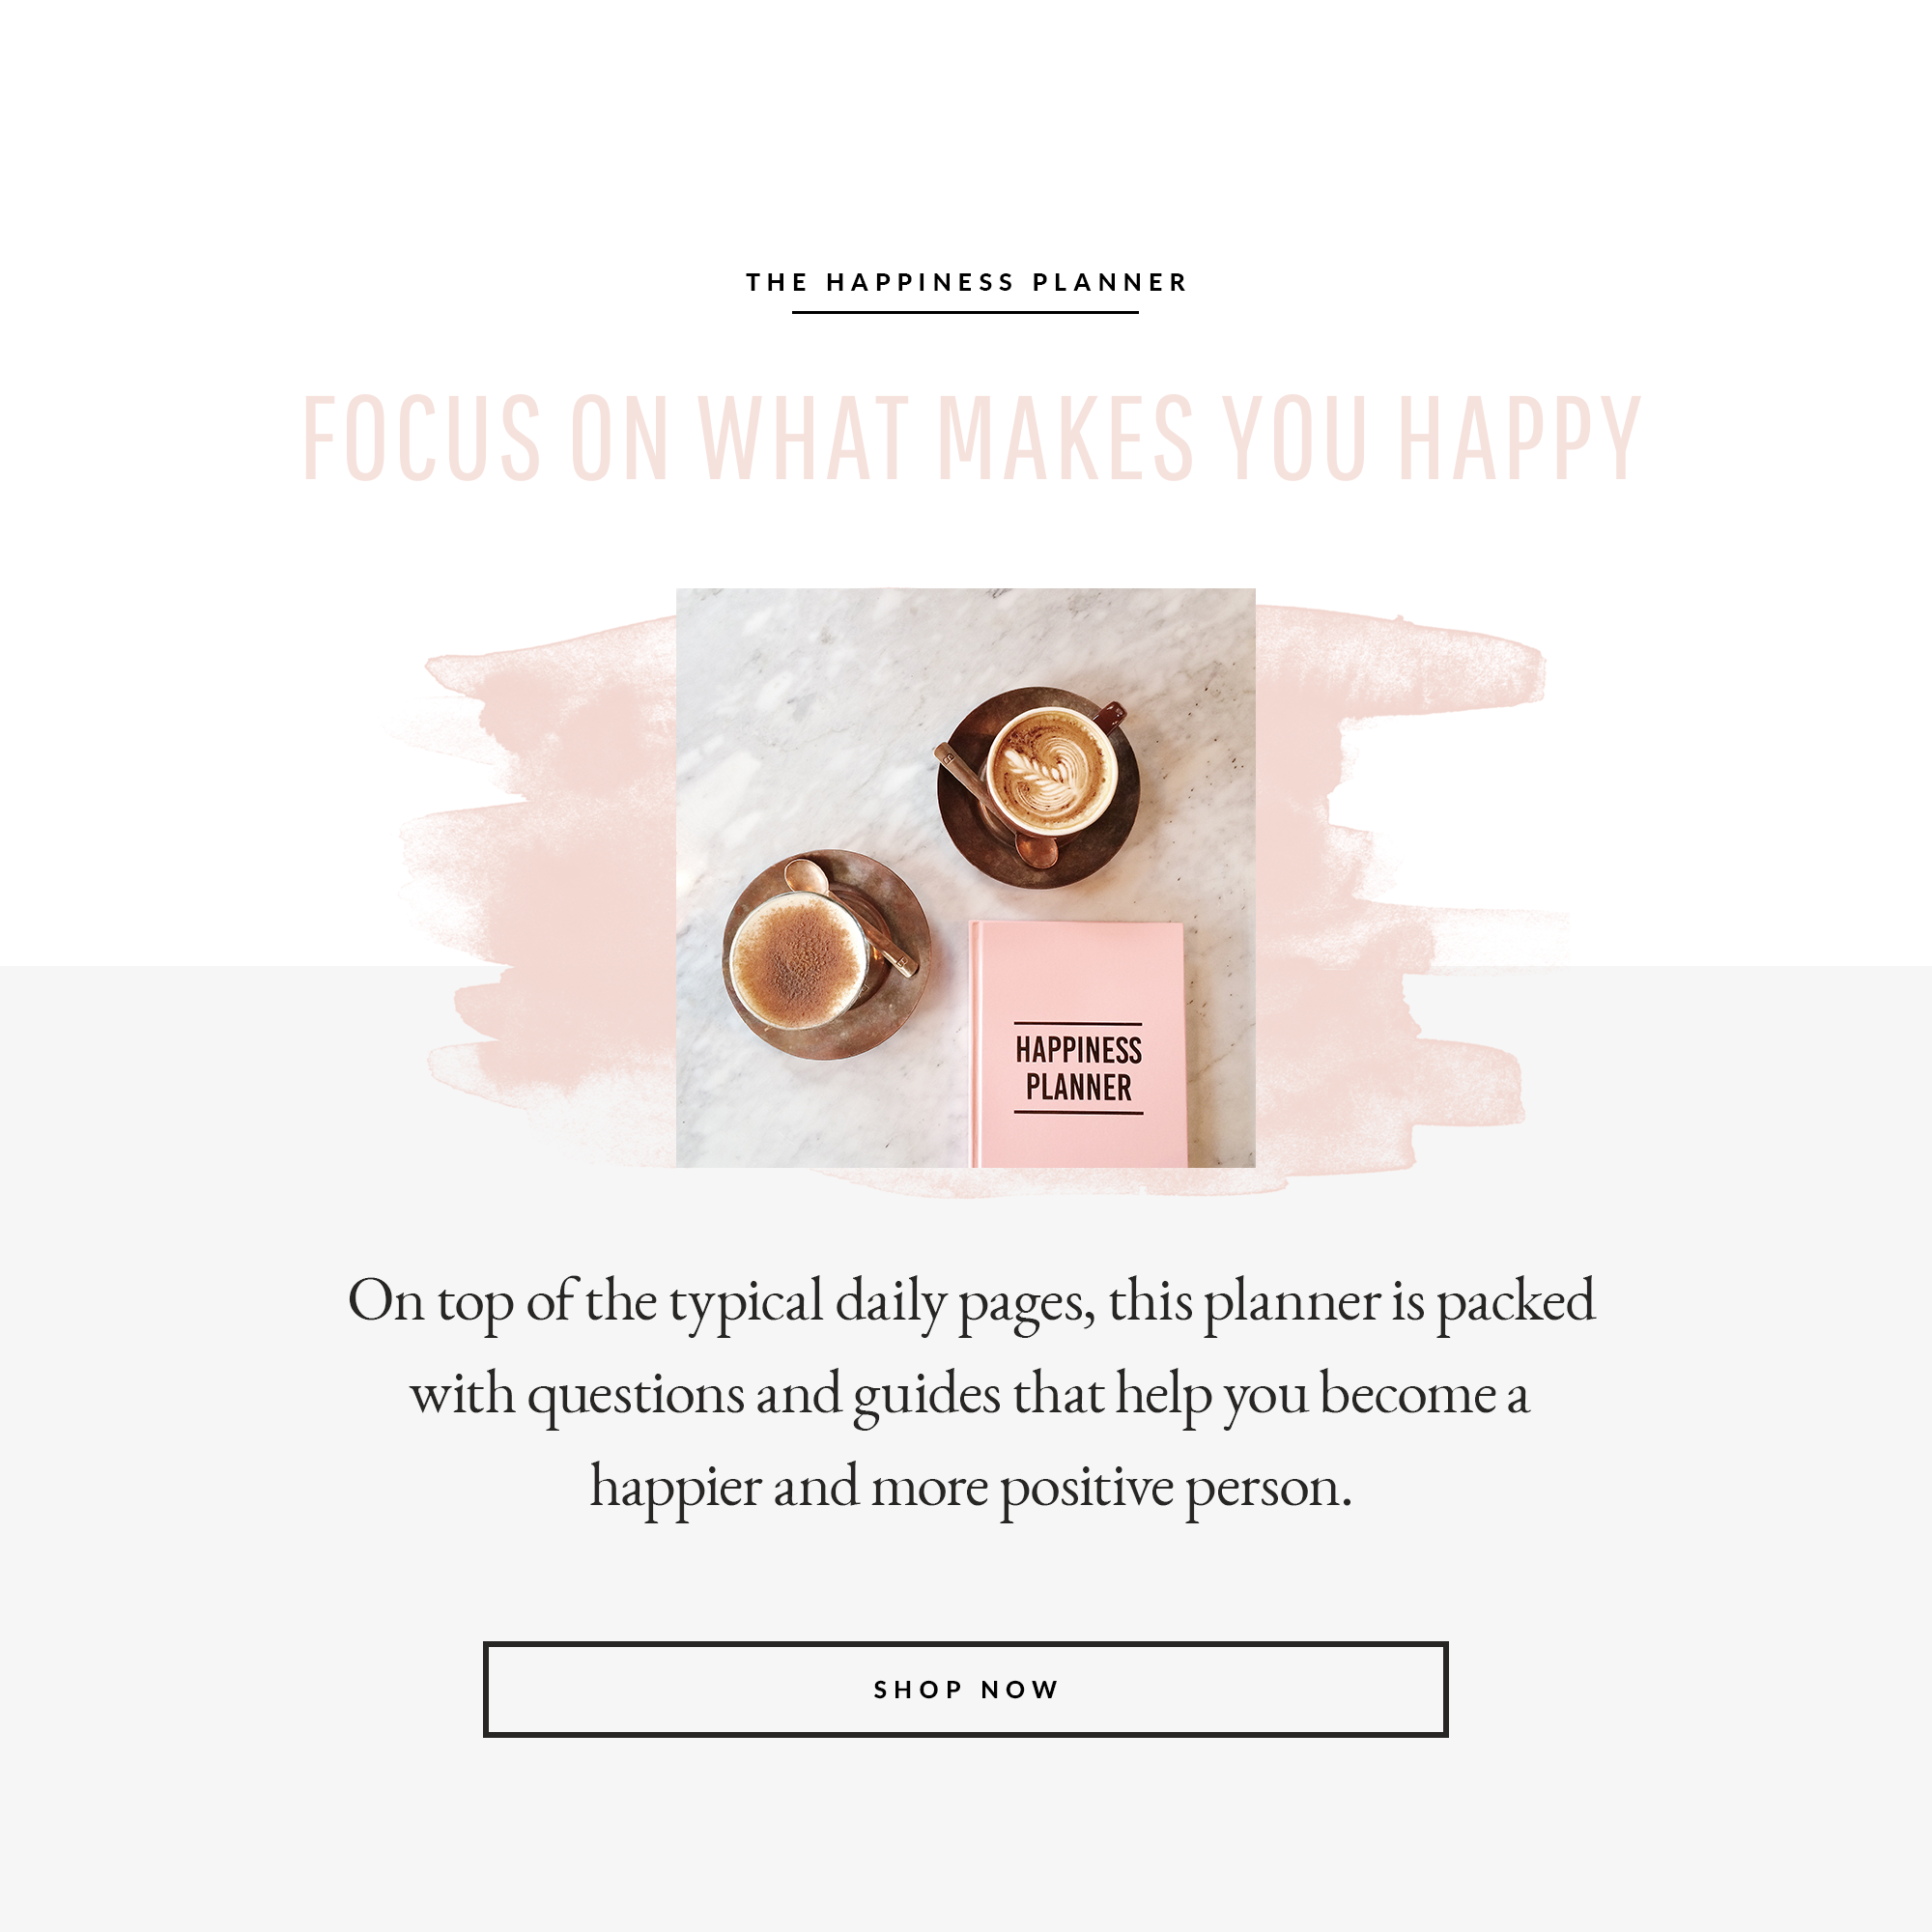 SHOP NOW for Inspirational stationery designed to help you cultivate happiness by embracing the power of positive thinking, mindfulness, gratitude, and self-development.